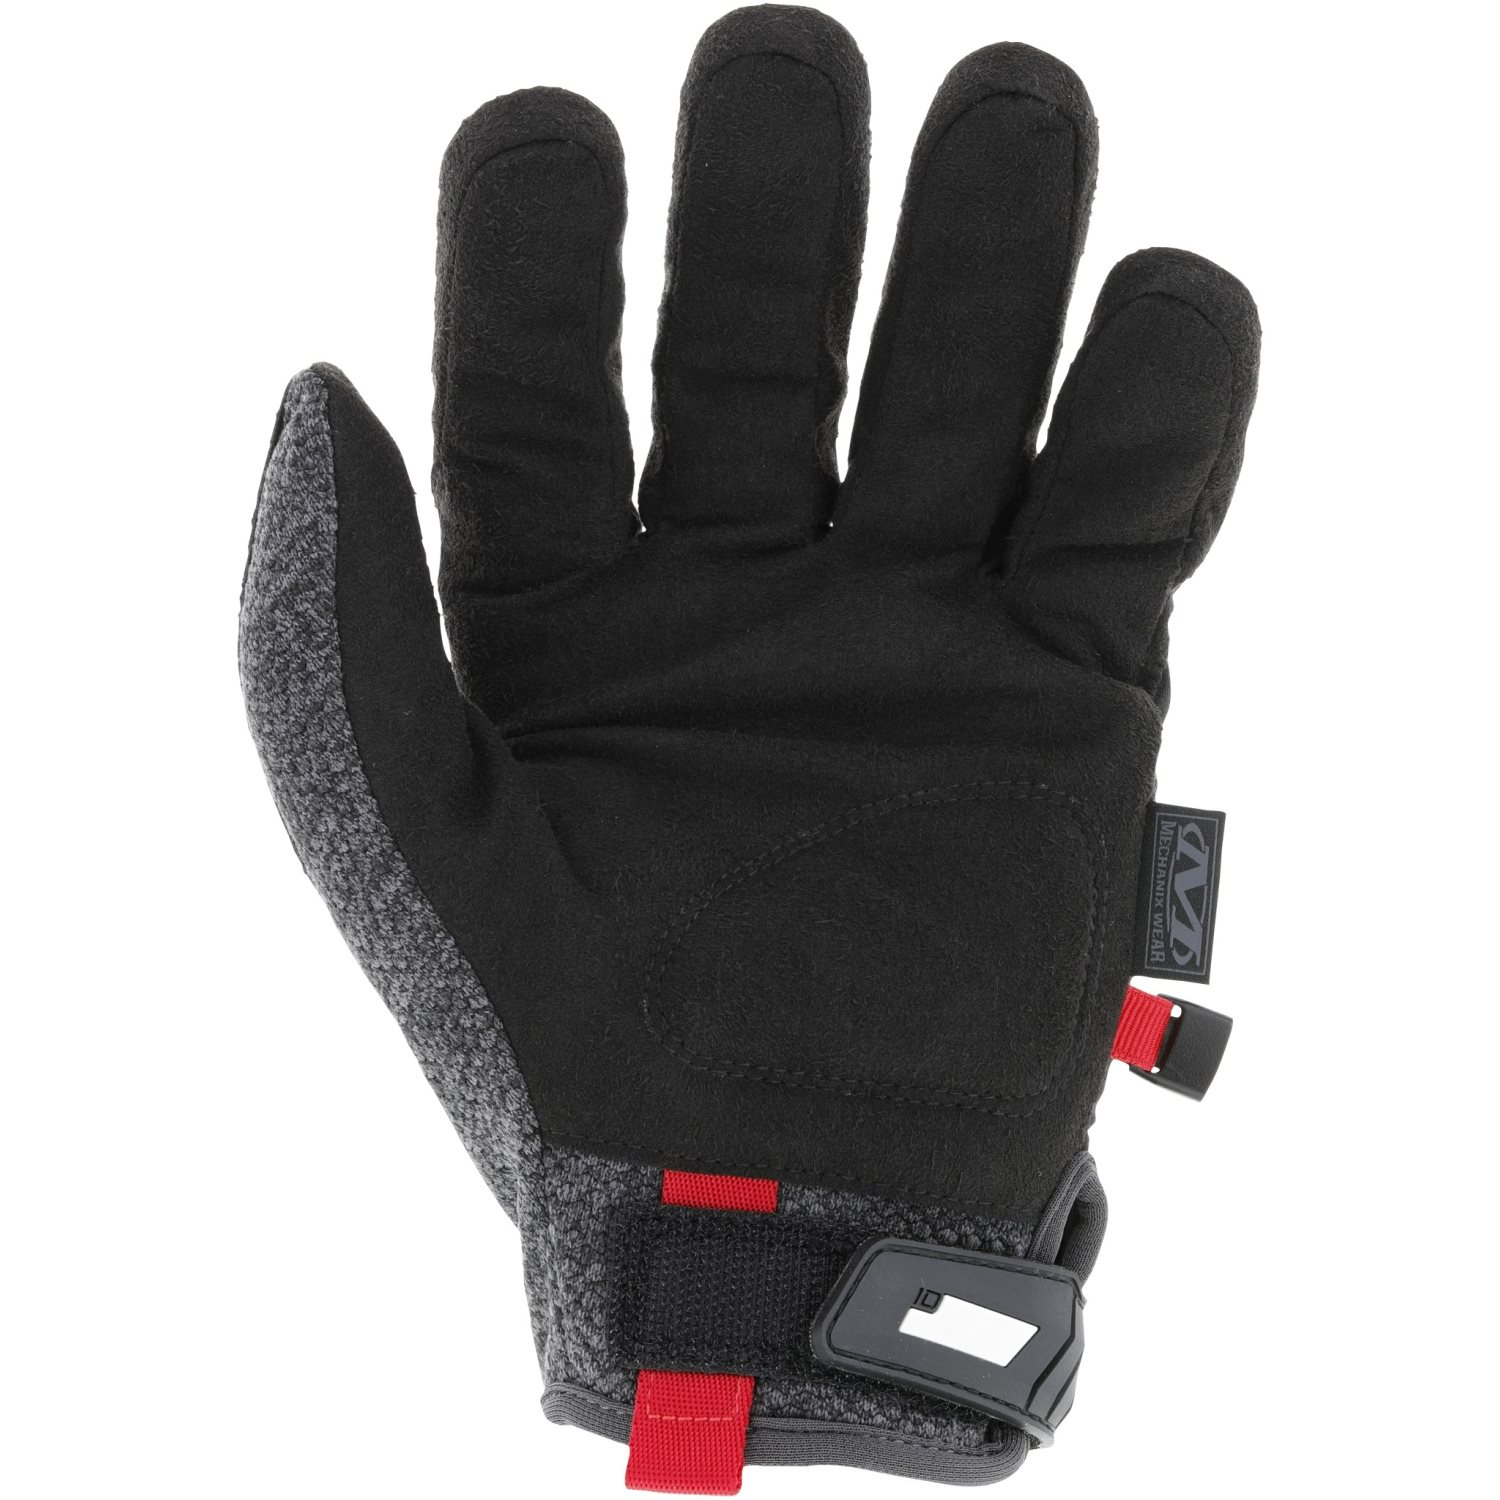 Rukavice COLDWORK ORIGINAL ČERNO/ŠEDÉ MECHANIX WEAR® CWKMG-58 L-11